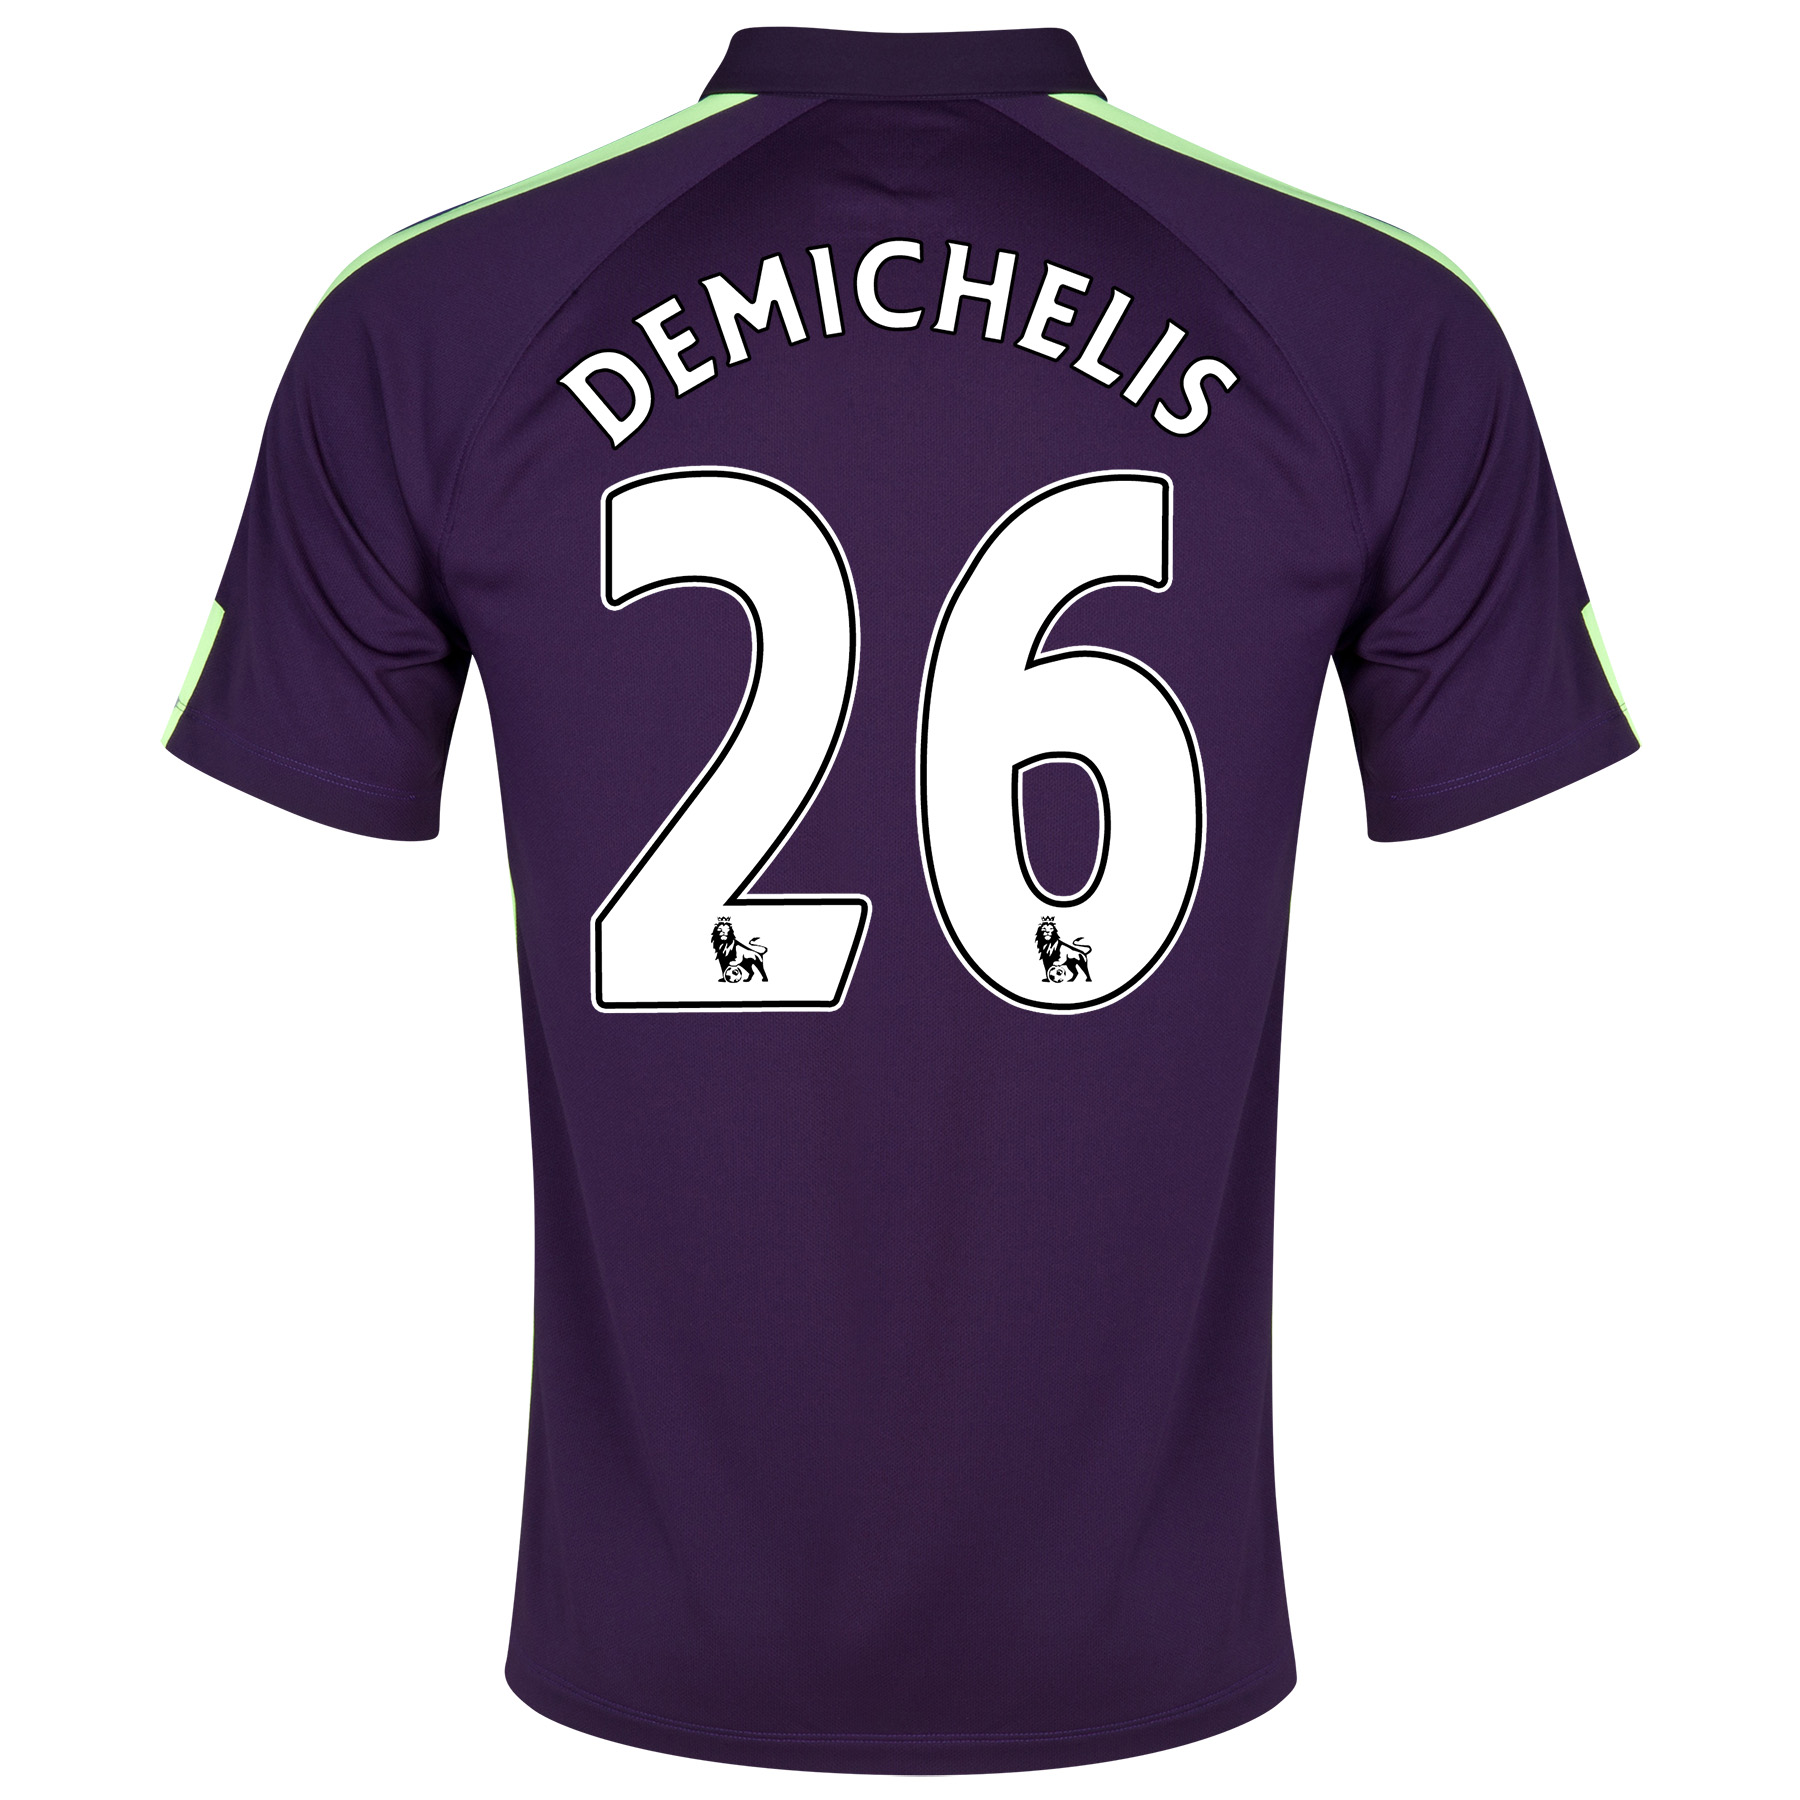 Manchester City Cup Away Shirt 2014/15 Purple with Demichelis 26 printing